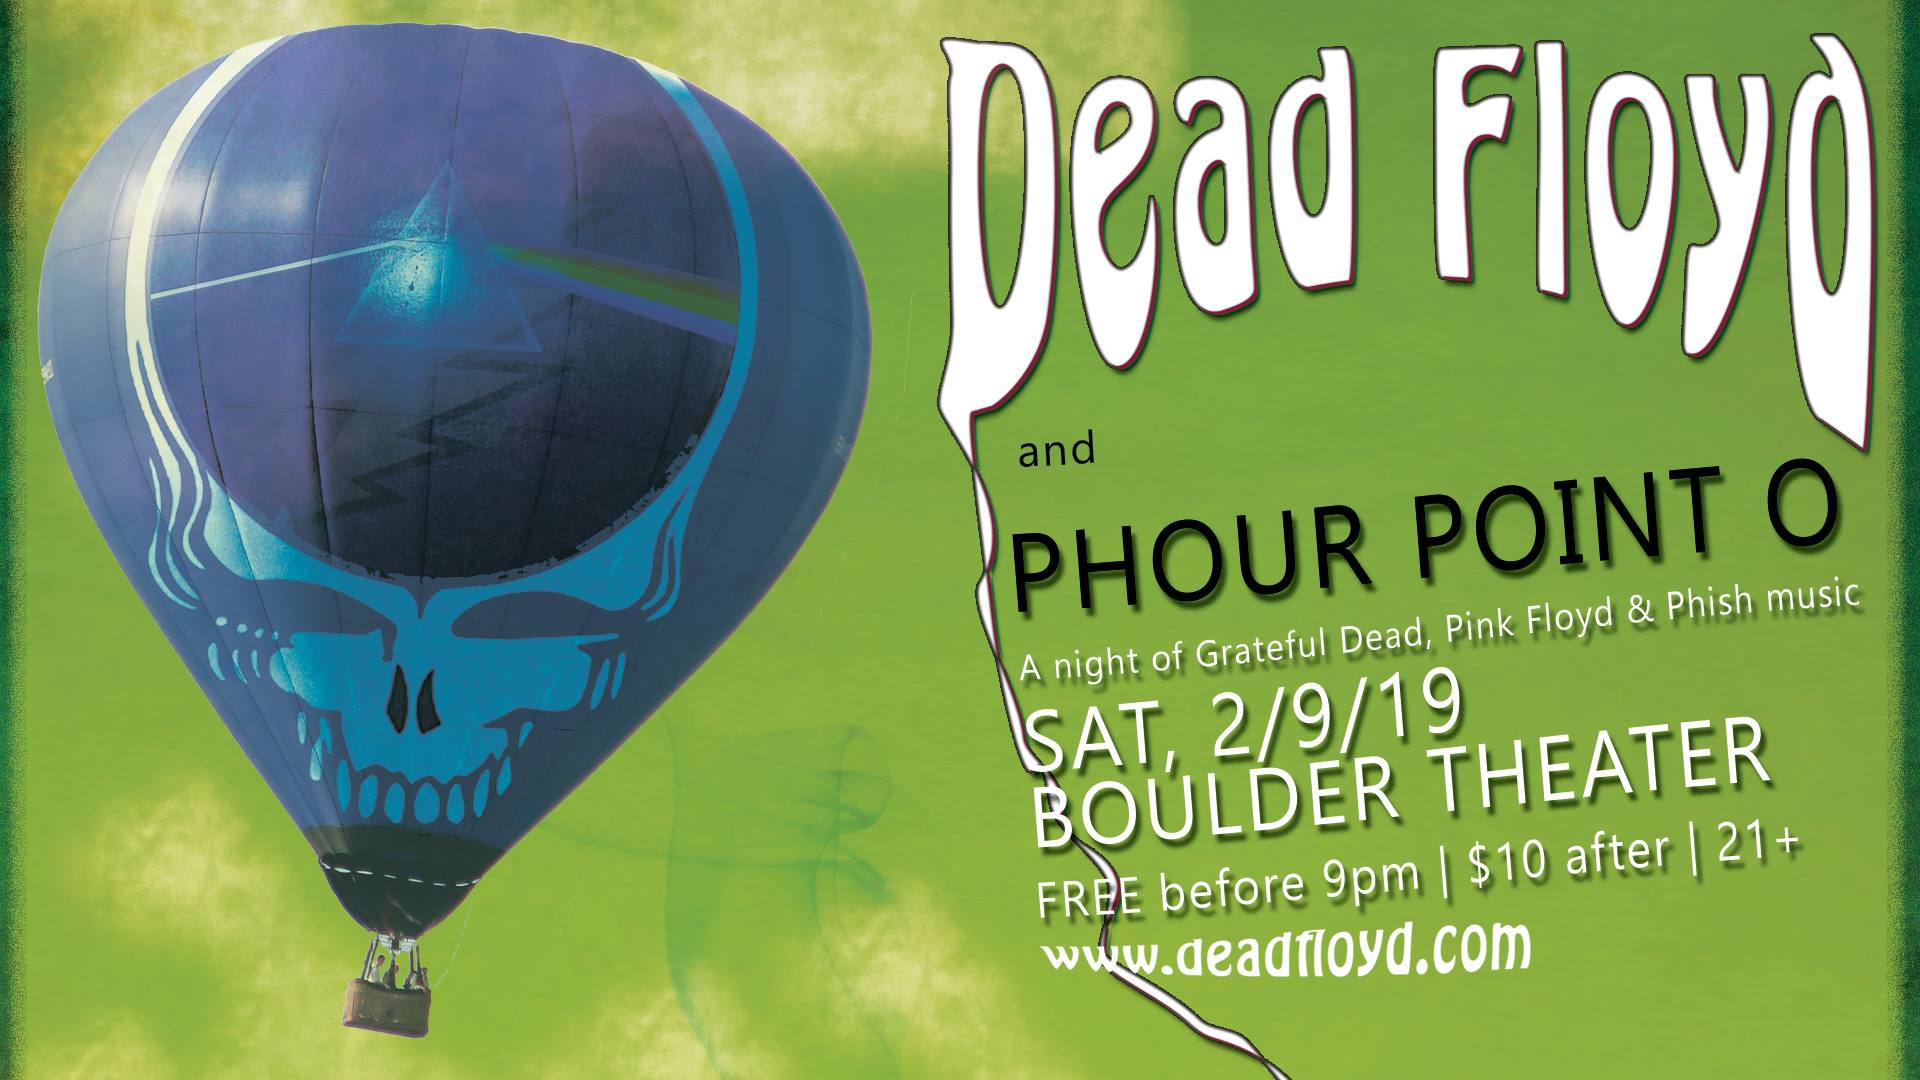 Dead Floyd + Phour Point O | Boulder Theater | 2/9/19